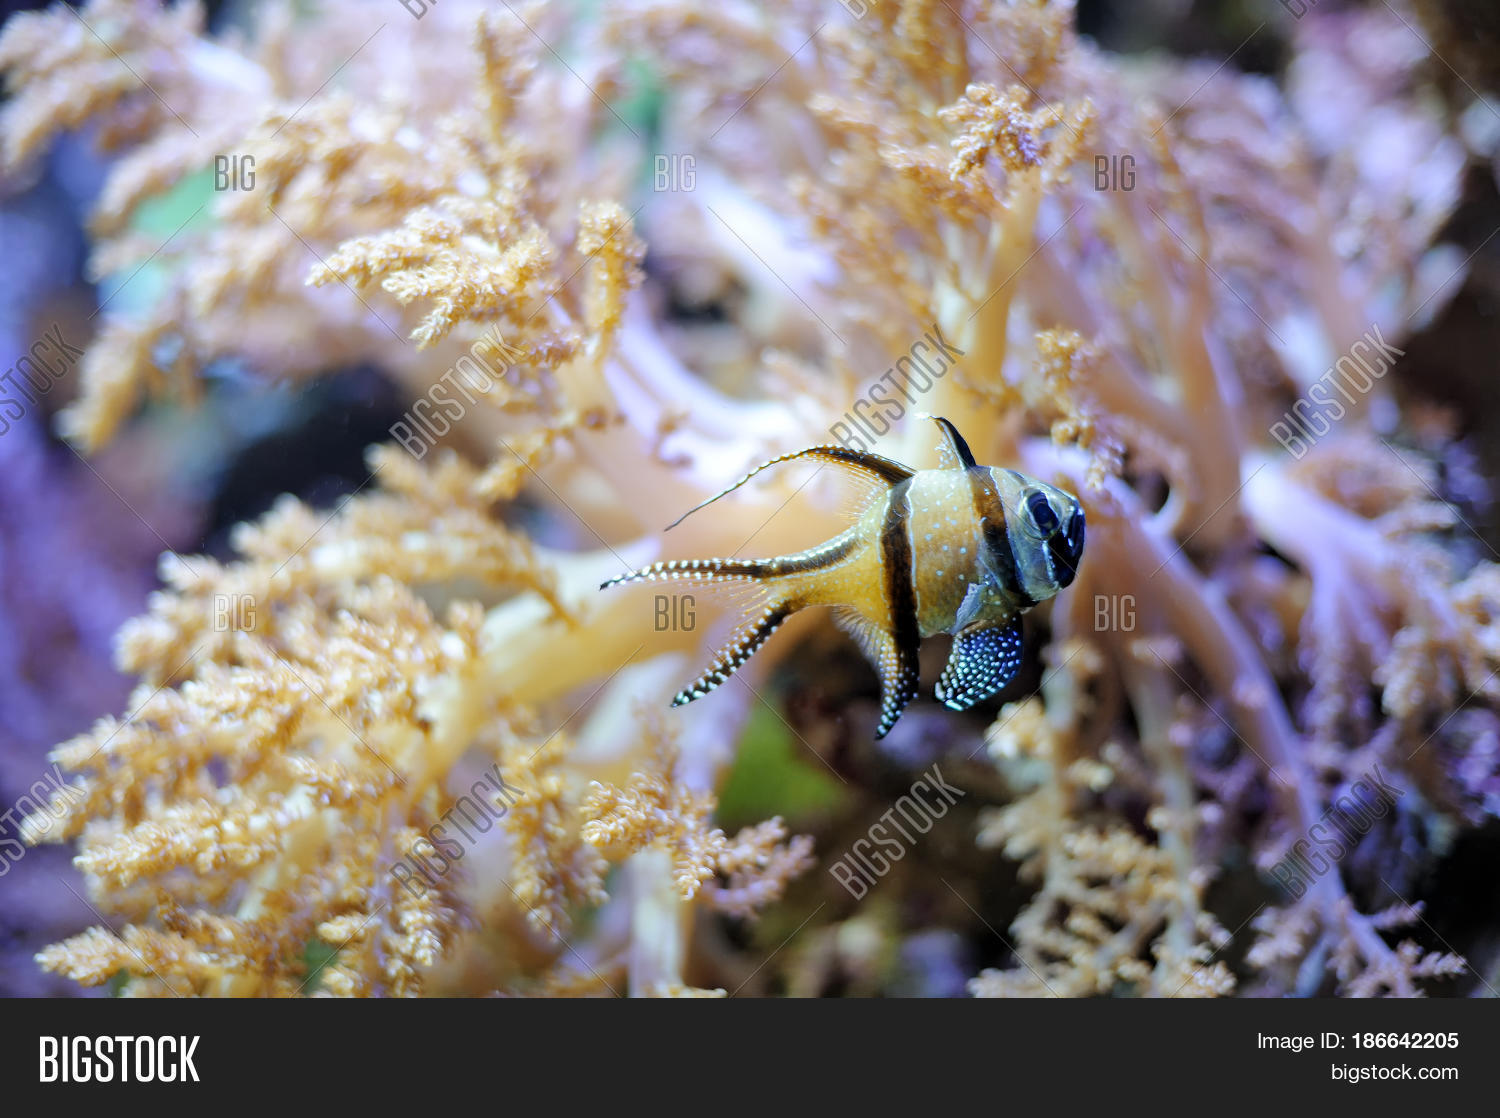 Tropical striped little fish image photo bigstock for Little fish swimming